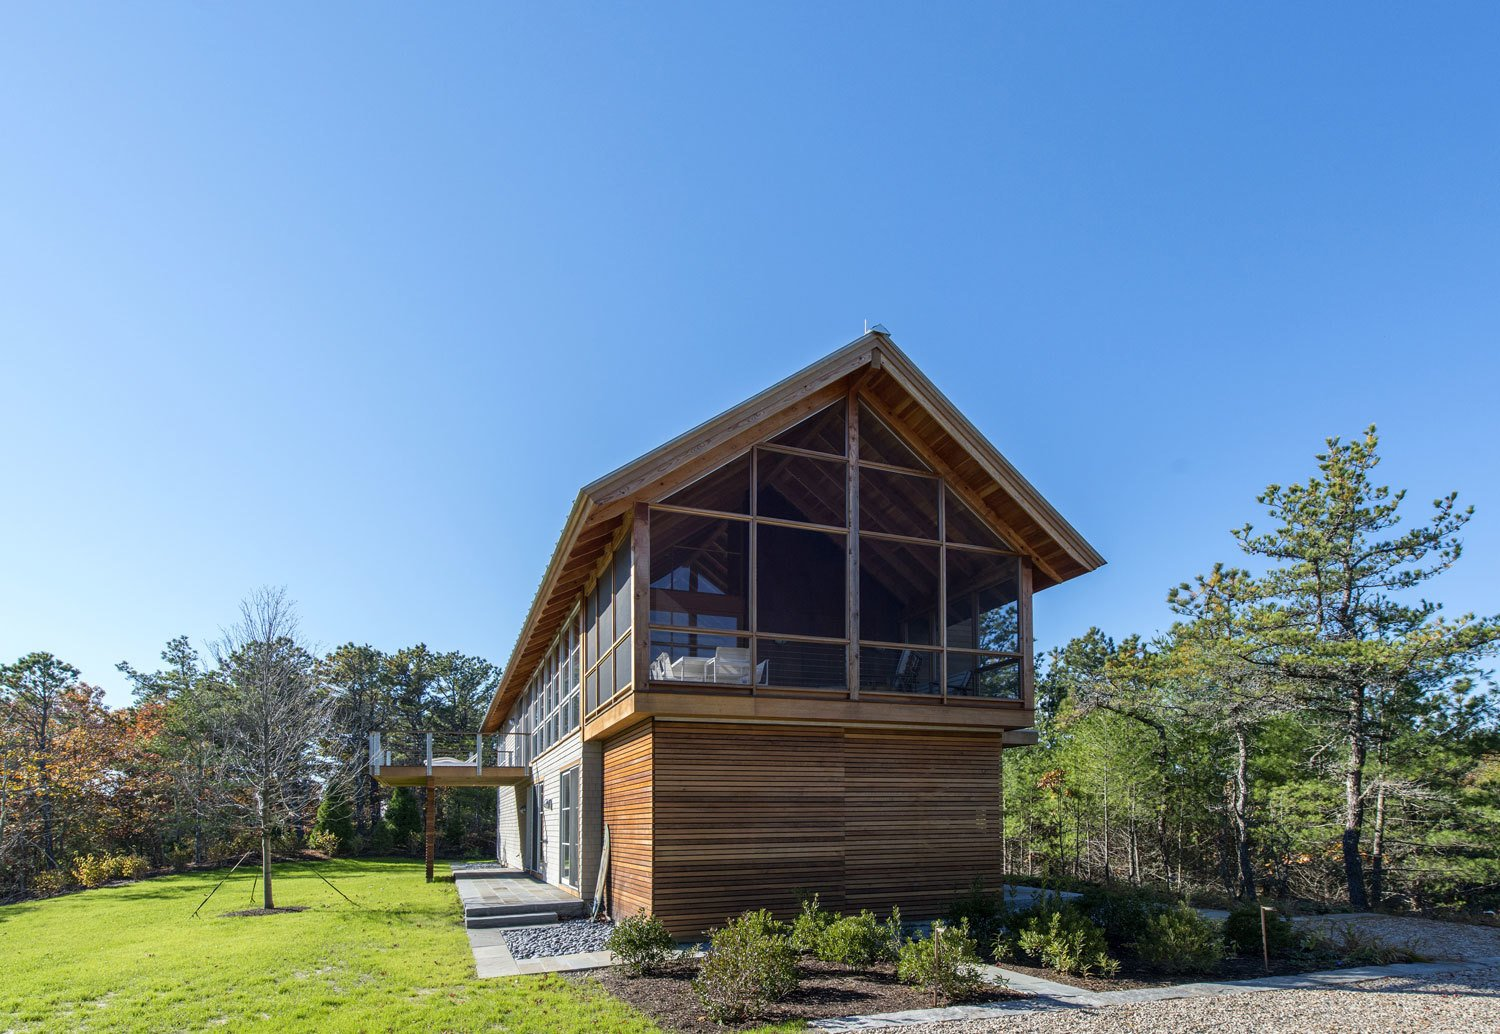 """""""The typical Cape Cod house built by early settlers had very few windows, as they were built to survive a harsh winter,"""" Hammer explains. The architect emulated their recognizable form with a 9/12 pitched gable roof but added plenty of contemporary glazing for natural light and ventilation.  Modern Homes with Cedar Facades by Andrea Smith from A Modern Take on the Gabled Cabin in Cape Cod"""